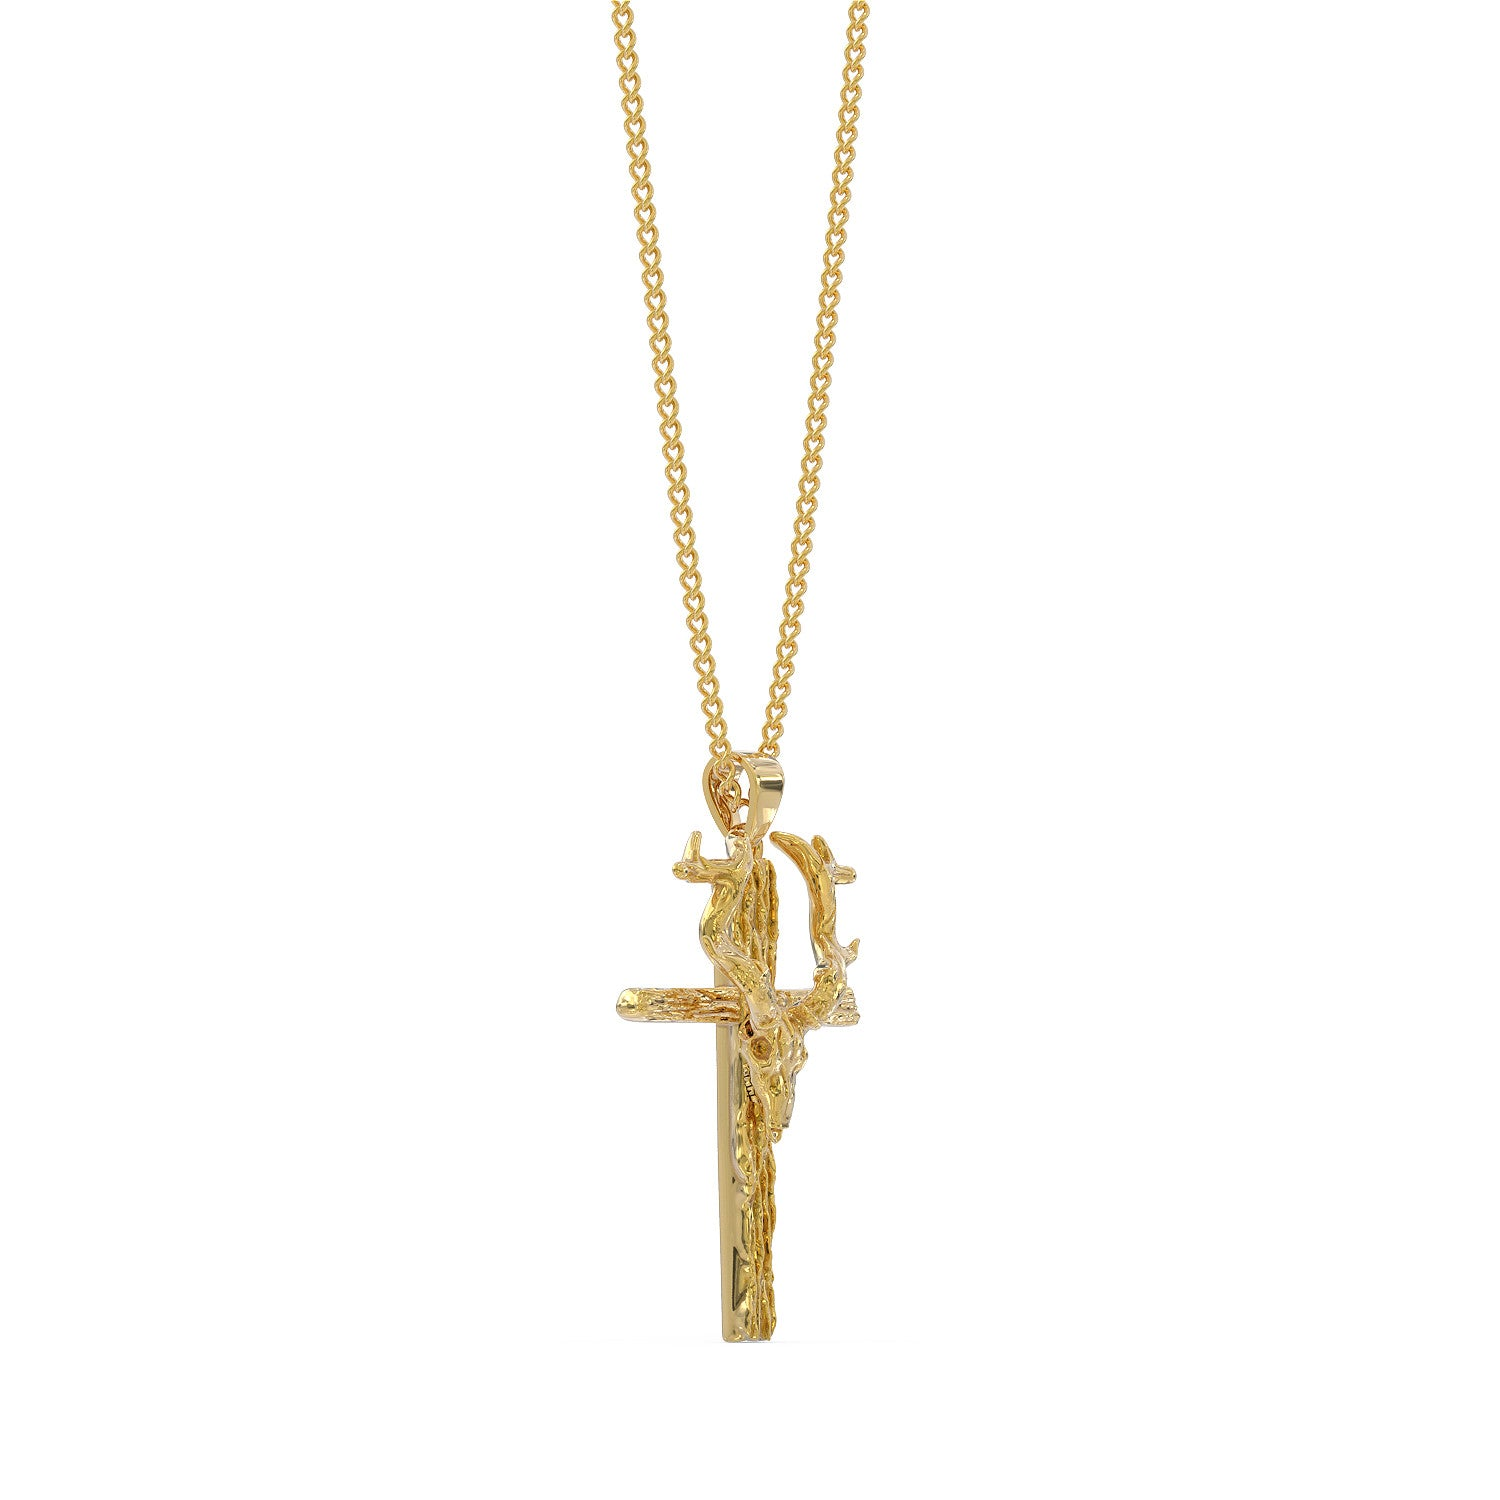 Buck Cross Necklace - STRICTLY LIMITED EDITION